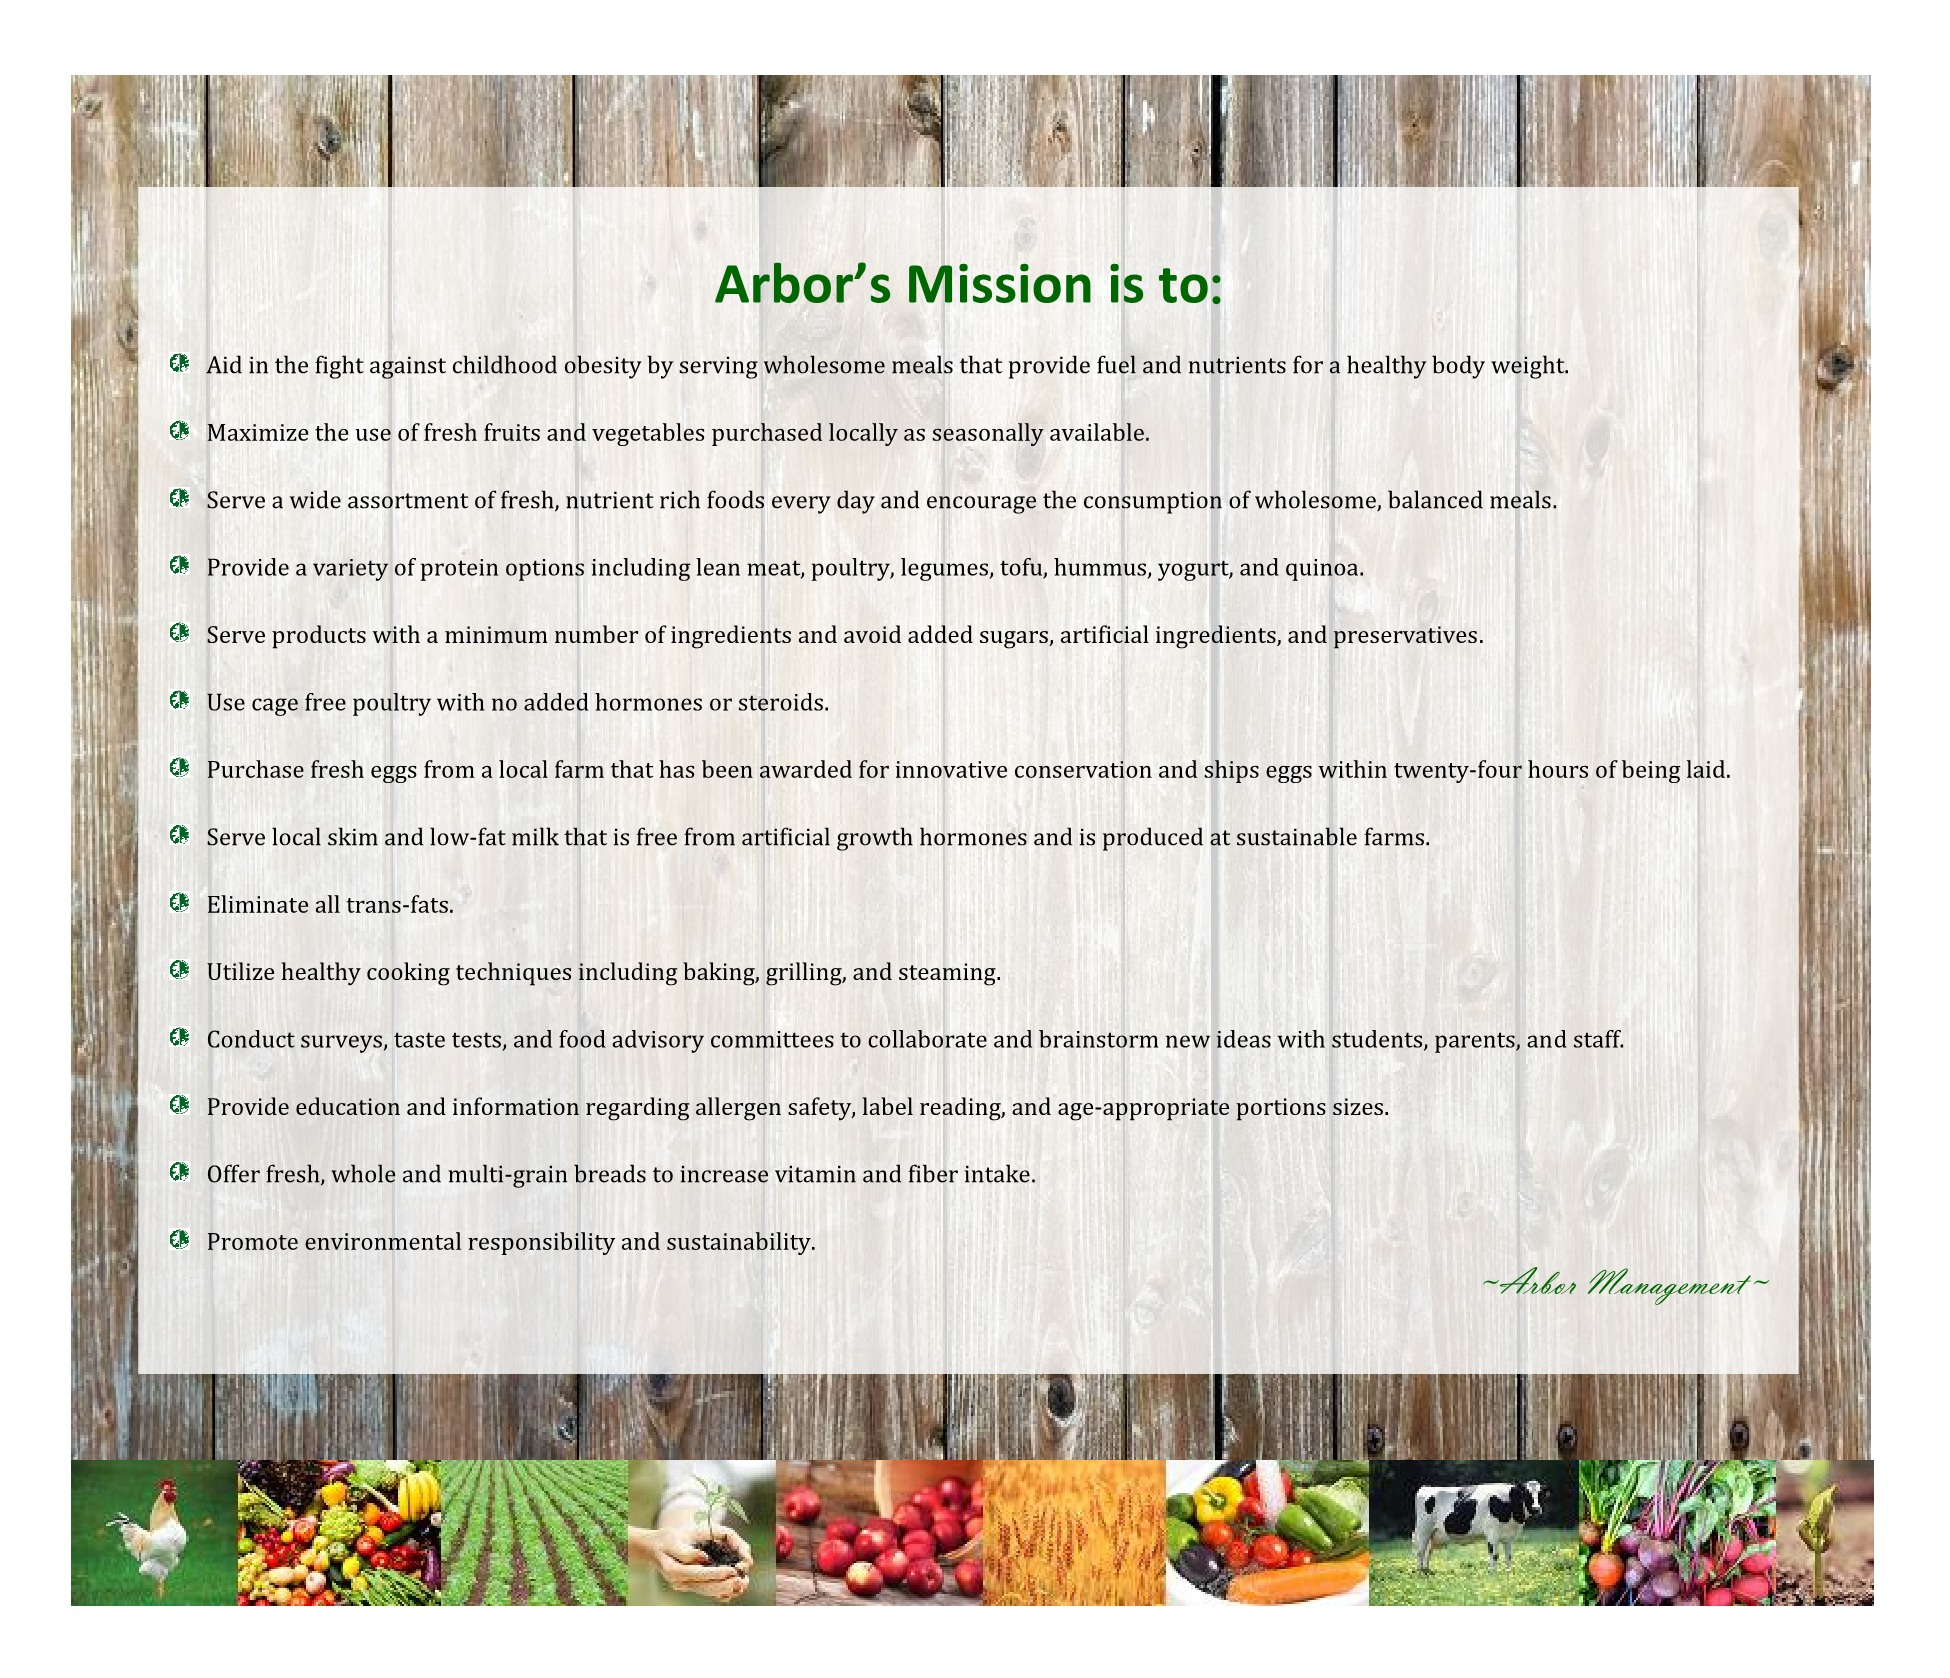 Arbor's Mission is to:   Aid in the fight against childhood obesity by serving wholesome meals that provide fuel and nutrients for a healthy body weight.   Maximize the use of fresh fruits and vegetables purchased locally as seasonally available.   Serve a wide assortment of fresh, nutrient rich foods every day and encourage the consumption of wholesome, balanced meals.   Provide a variety of protein options including lean meat, poultry, legumes, tofu, hummus, yogurt, and quinoa.   Serve products with a minimum number of ingredients and avoid added sugars, artificial ingredients, and preservatives.   Use cage free poultry with no added hormones or steroids.   Purchase fresh eggs from a local farm that has been awarded for innovative conservation and ships eggs within twenty-four hours of being laid.   Serve local skim and low-fat milk that is free from artificial growth hormones and is produced at sustainable farms.   Eliminate all trans-fats.   Utilize healthy cooking techniques including baking, grilling, and steaming.   Conduct surveys, taste tests, and food advisory committees to collaborate and brainstorm new ideas with students, parents, and staff.   Provide education and information regarding allergen safety, label reading, and age-appropriate portions sizes.   Offer fresh, whole and multi-grain breads to increase vitamin and fiber intake.   Promote environmental responsibility and sustainability.